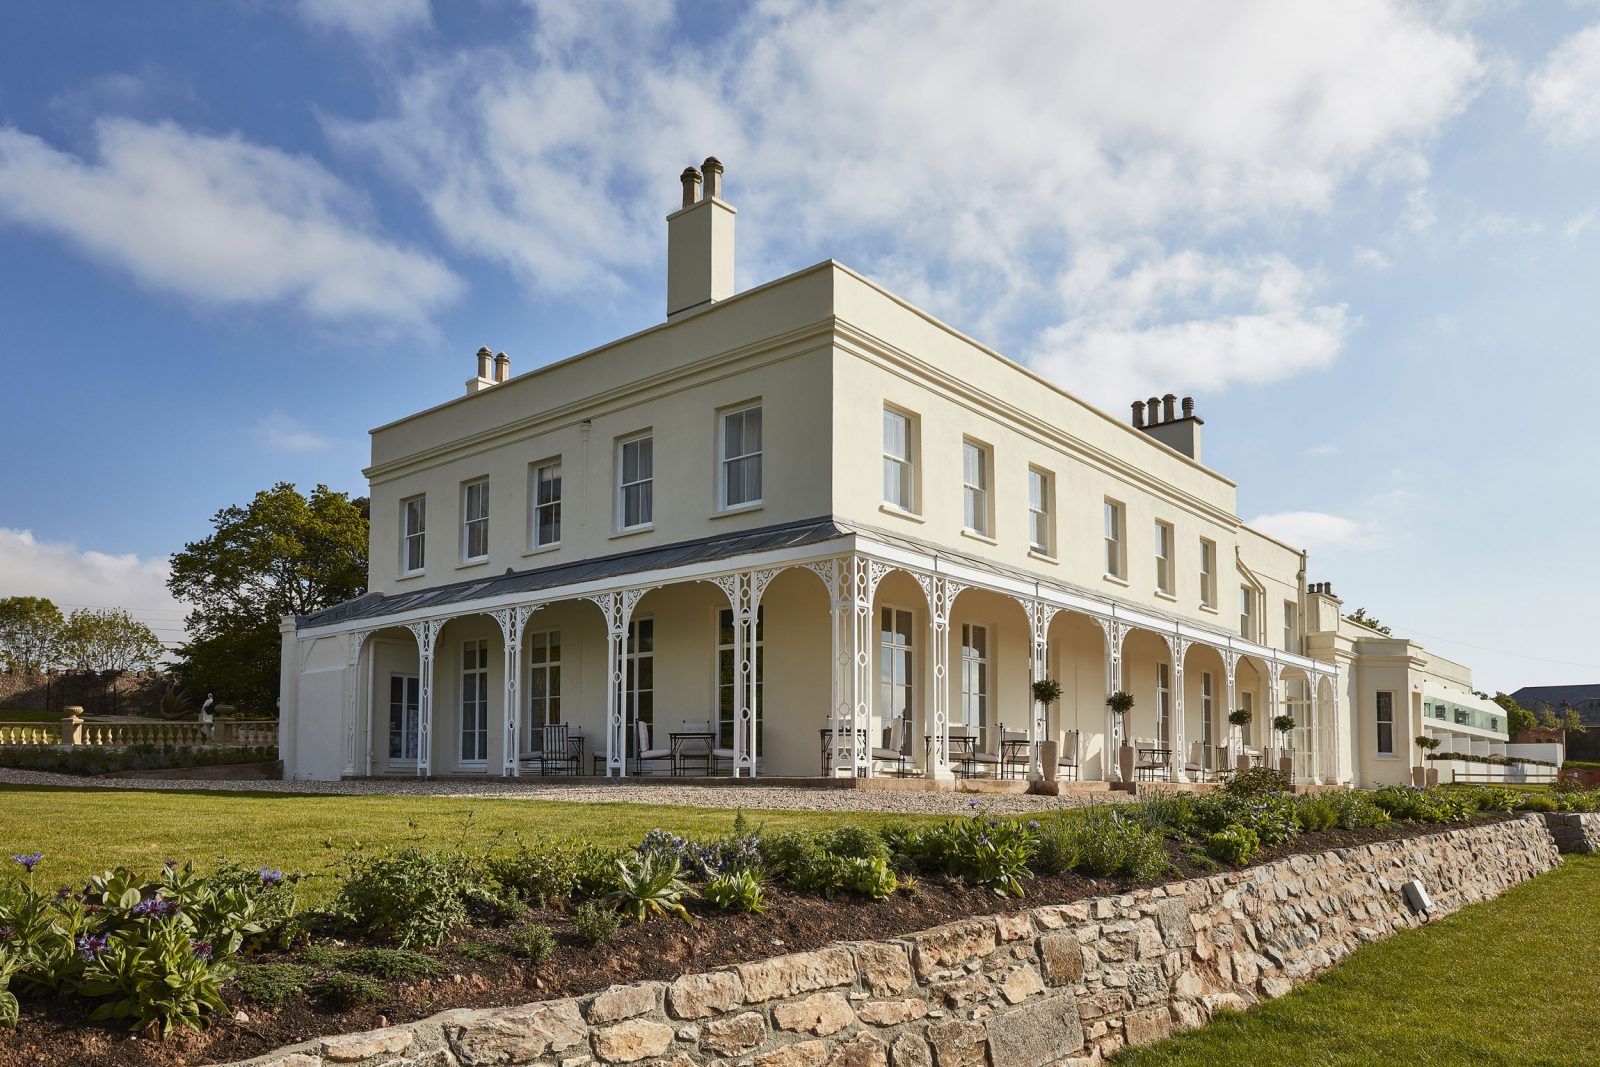 Lympstone Manor receives Honourable Mention in Devon Historic Buildings Trust Awards – Rud Sawers Architects, Devon